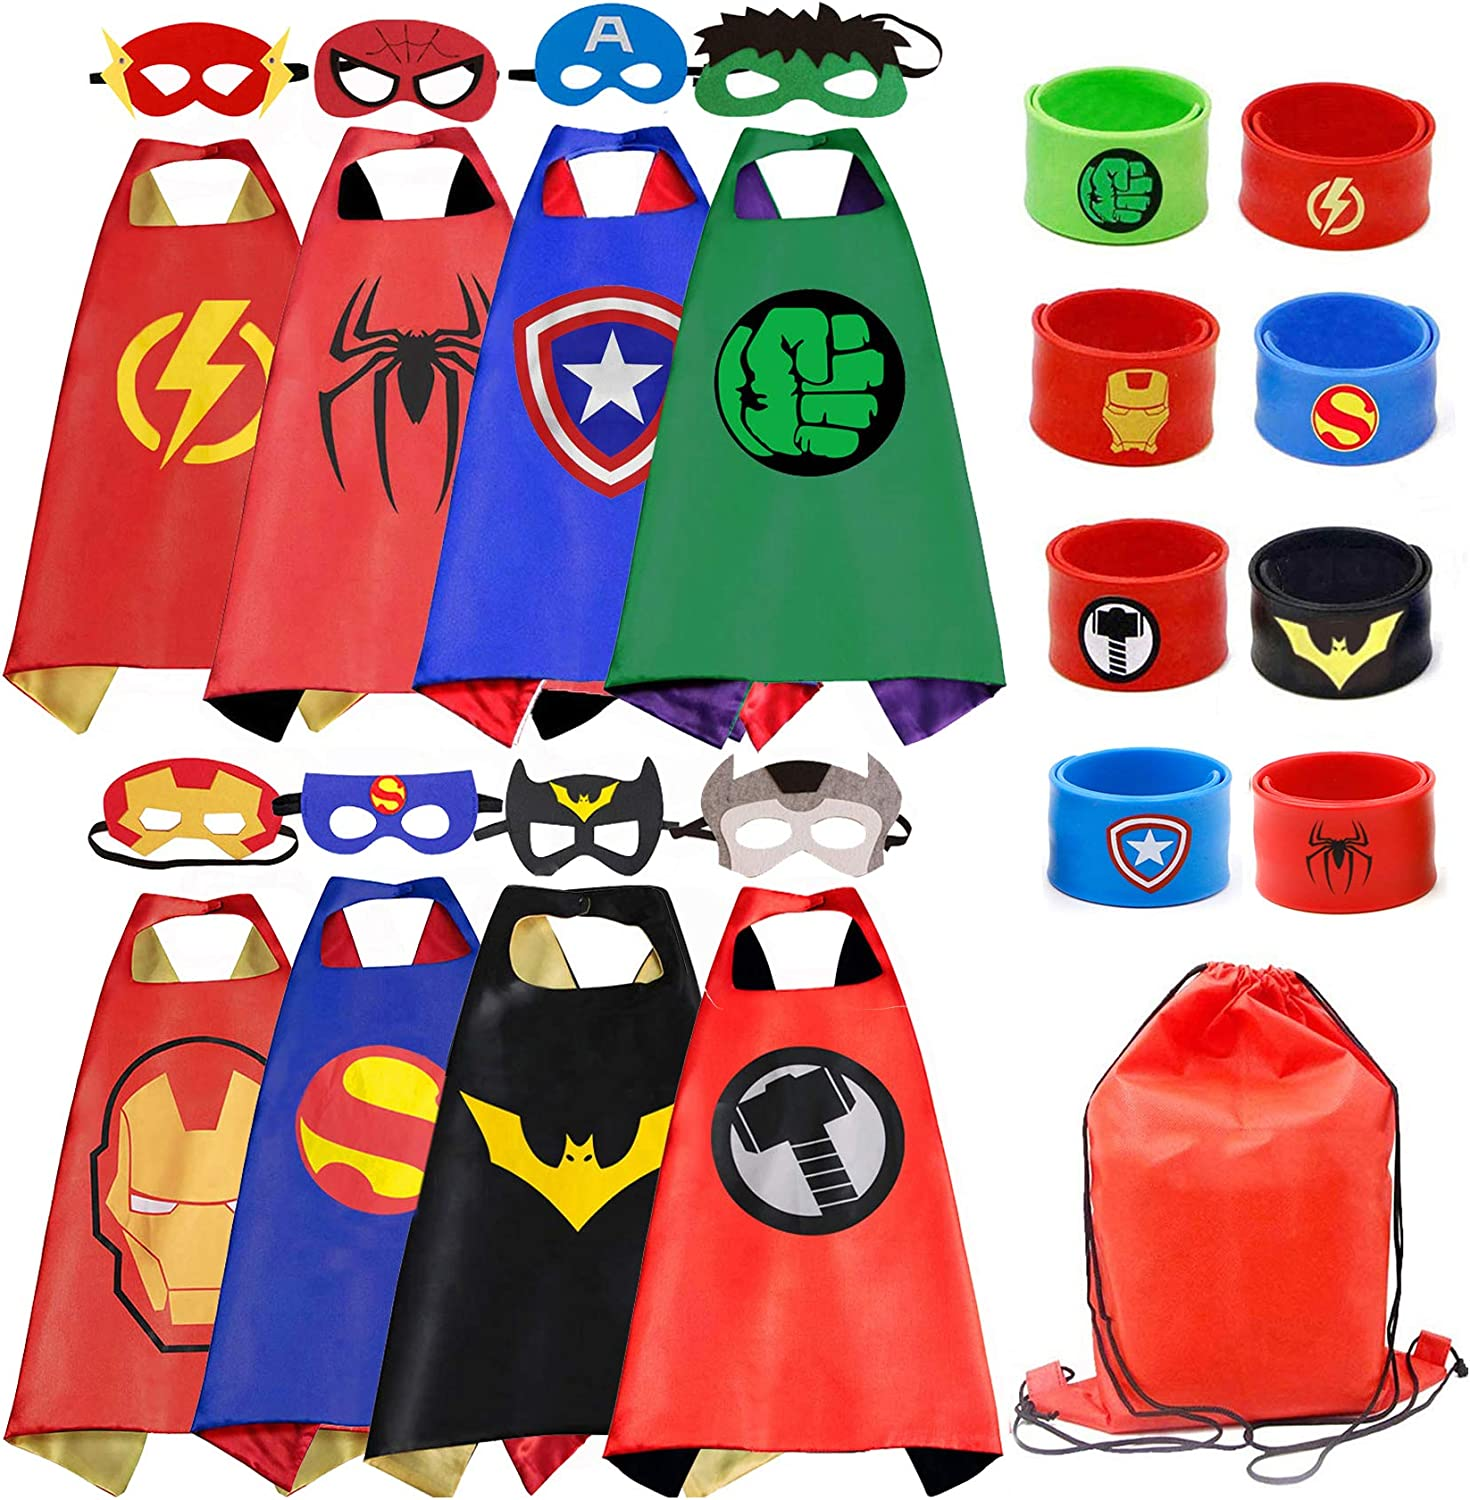 Opromo Adult Kid Superhero Cape Satin 4 Size 10 Color for Dress Up Party Costume